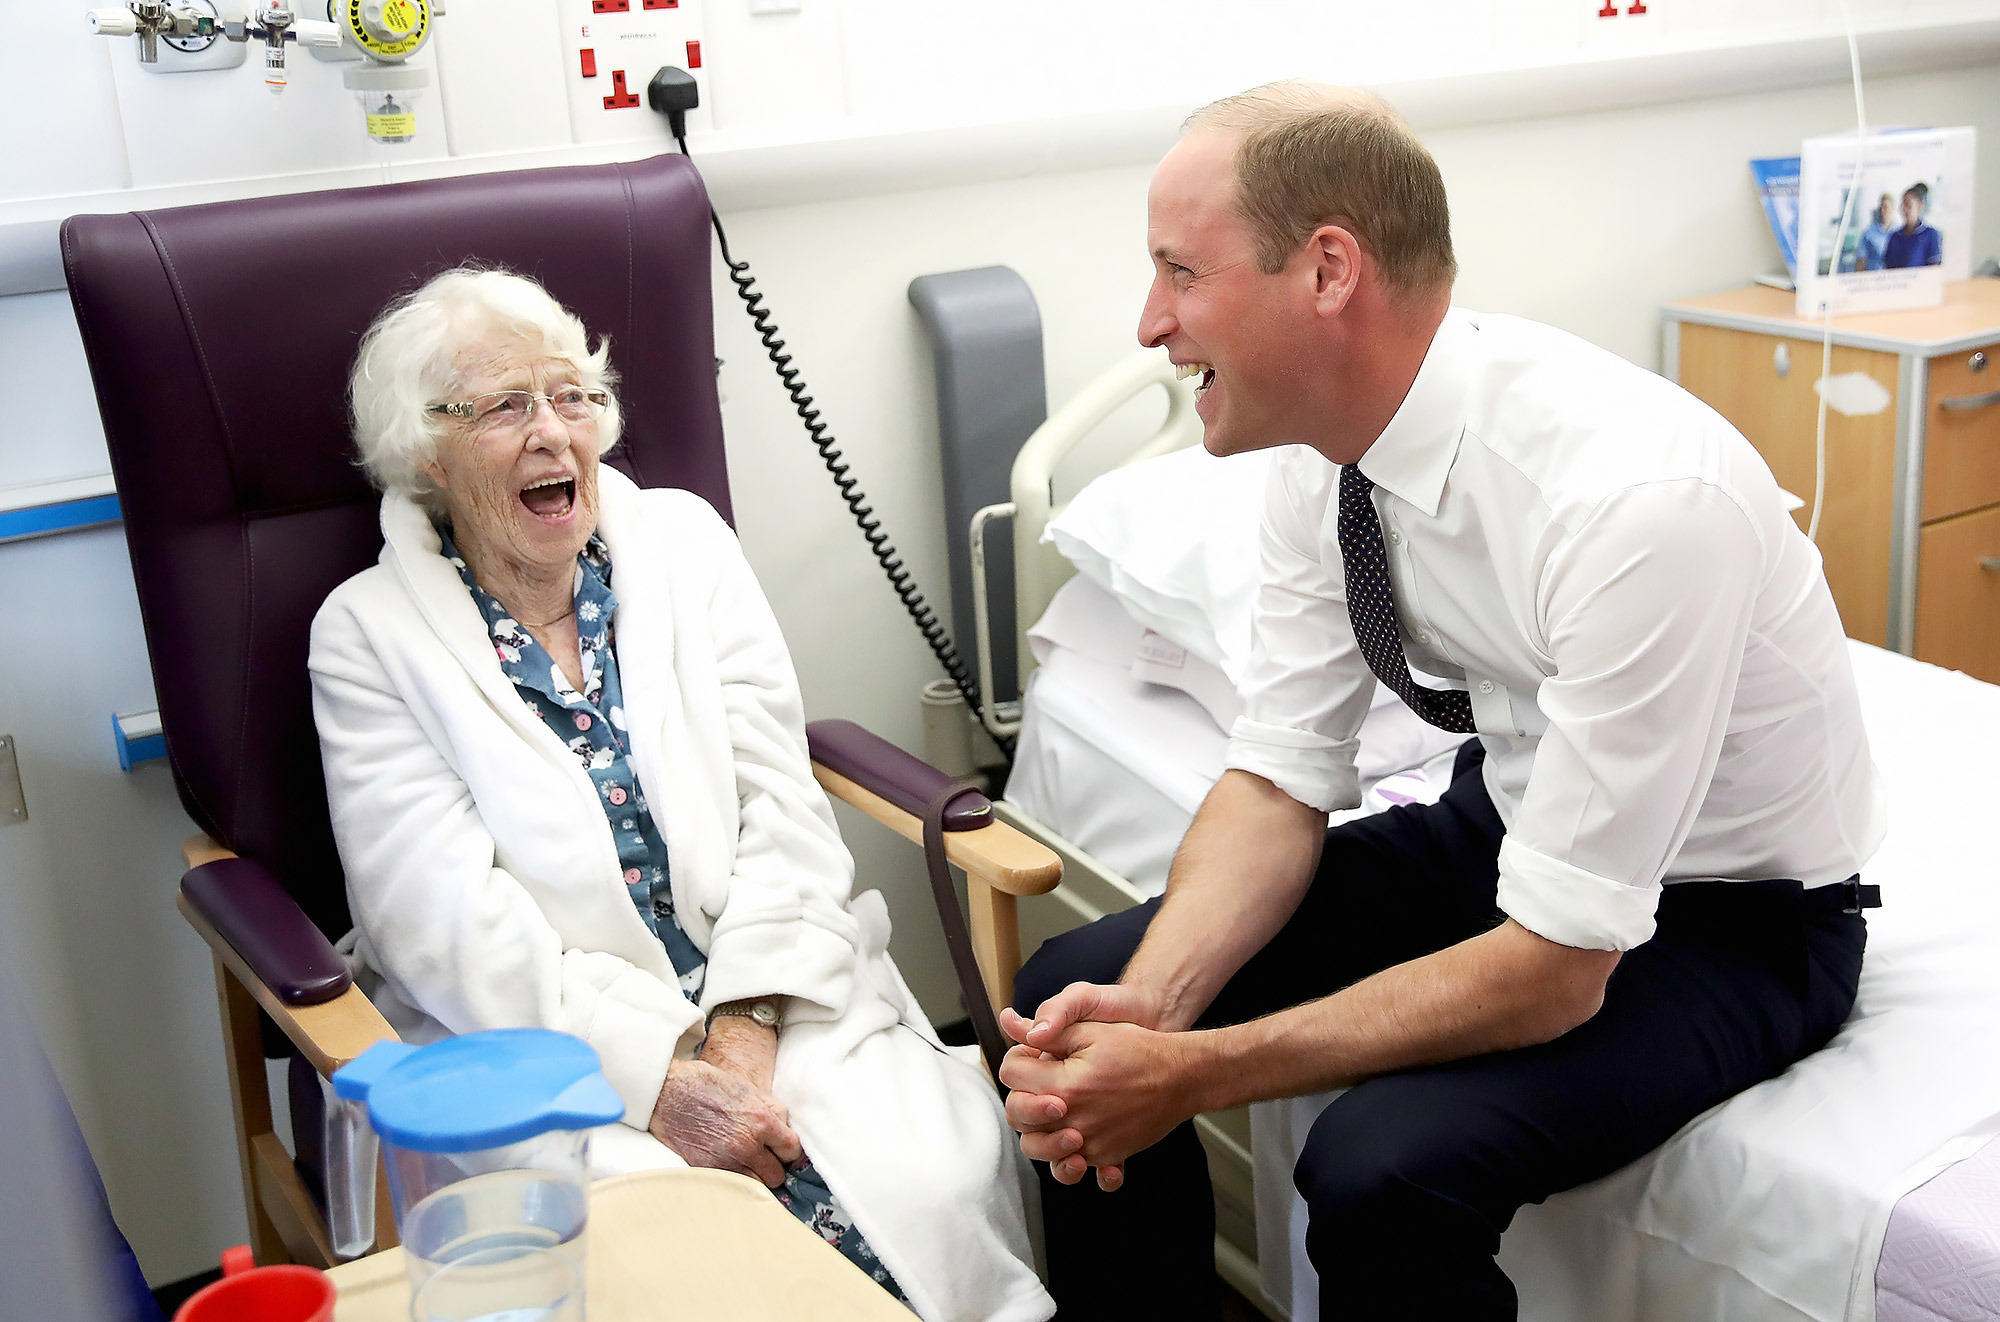 LIVERPOOL, ENGLAND - SEPTEMBER 14: Prince William, Duke of Cambridge shares a joke with patient Theresa Jones in the Frailty unit during a visit to Aintree University Hospital on September 14, 2017 in Liverpool, England. The Duke visited Aintree University Hospital to formally open the new Urgent Care and Trauma Centre (UCAT). This new unit, serving a catchment area of 2.3m residents in the North West, opened in January 2017 following a £35m redevelopment. (Photo by Chris Jackson/Getty Images)